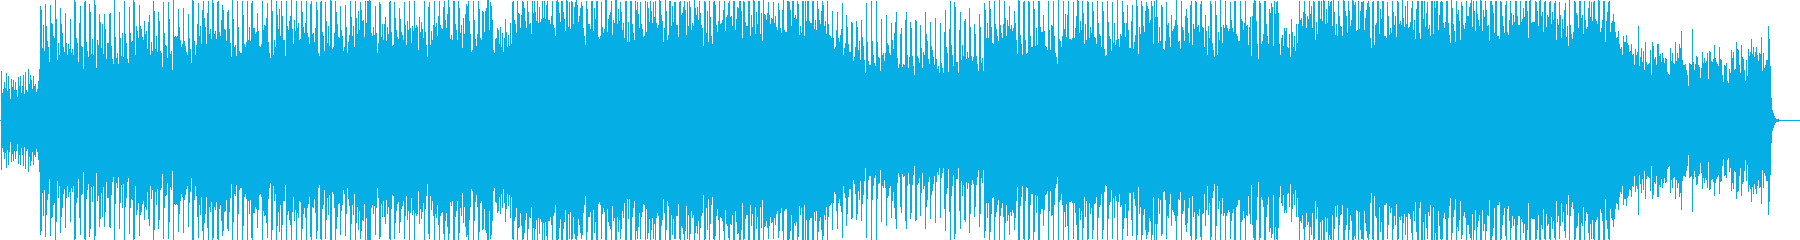 A refreshing feeling of running! Bright pops with a sense of transparency's reproduced waveform